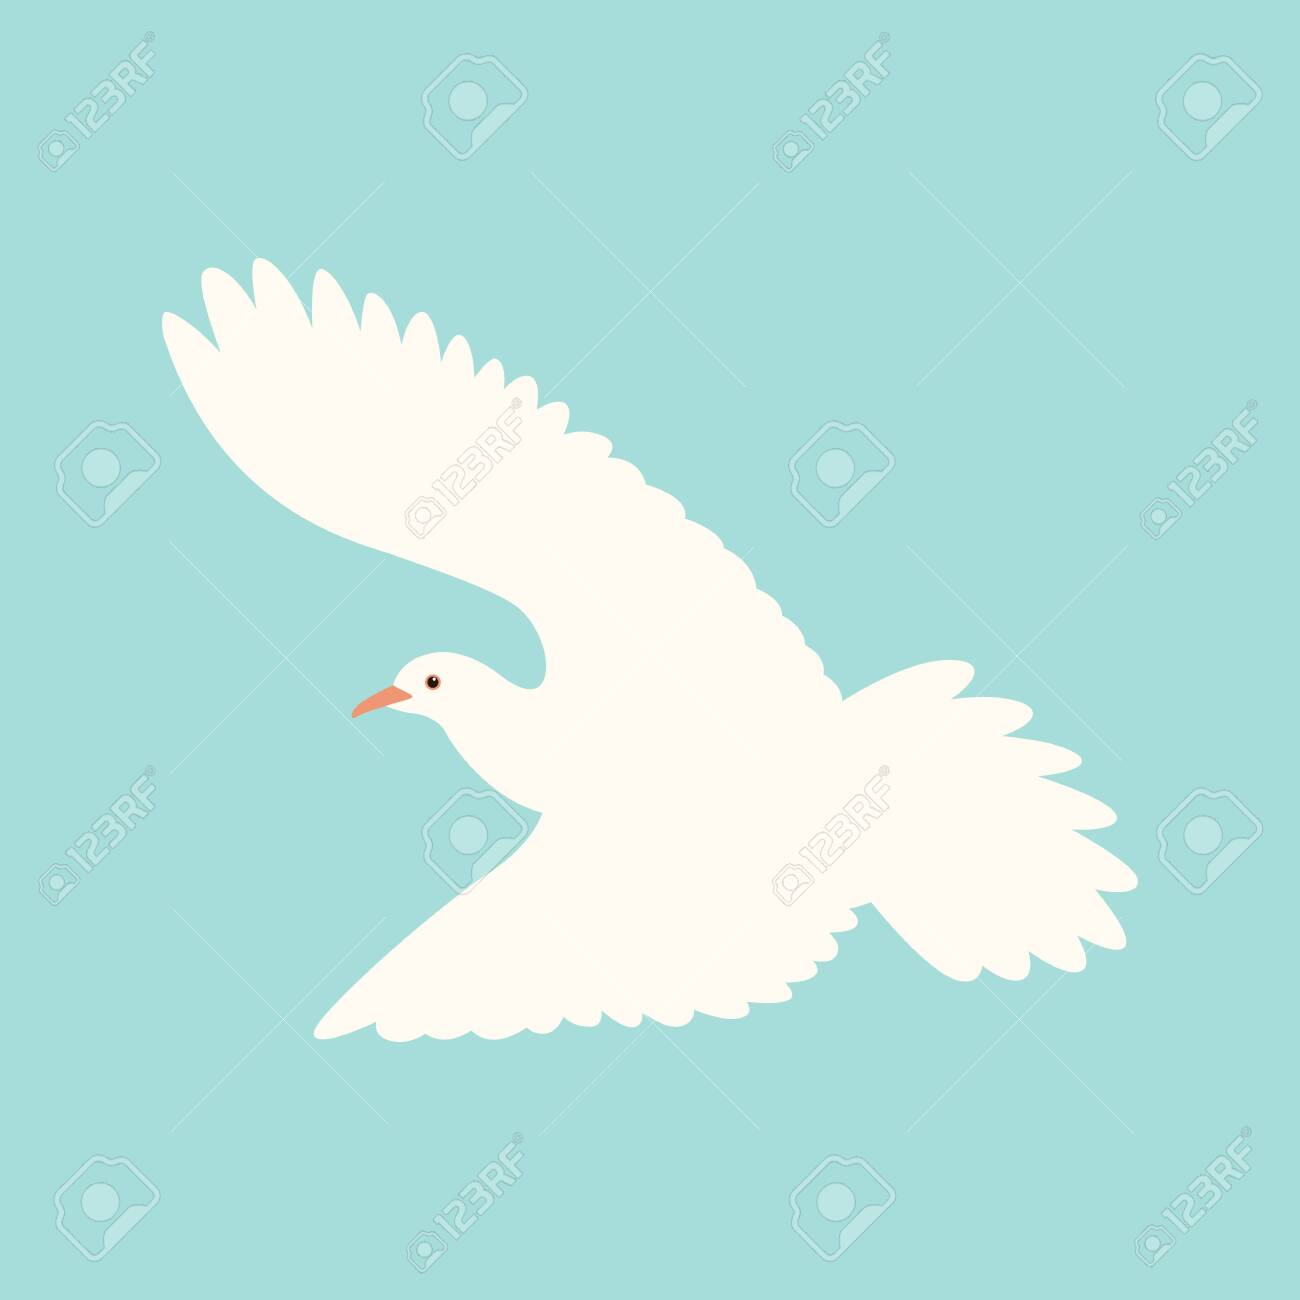 white dove.vector illustration, flat style ,profile view - 123170538